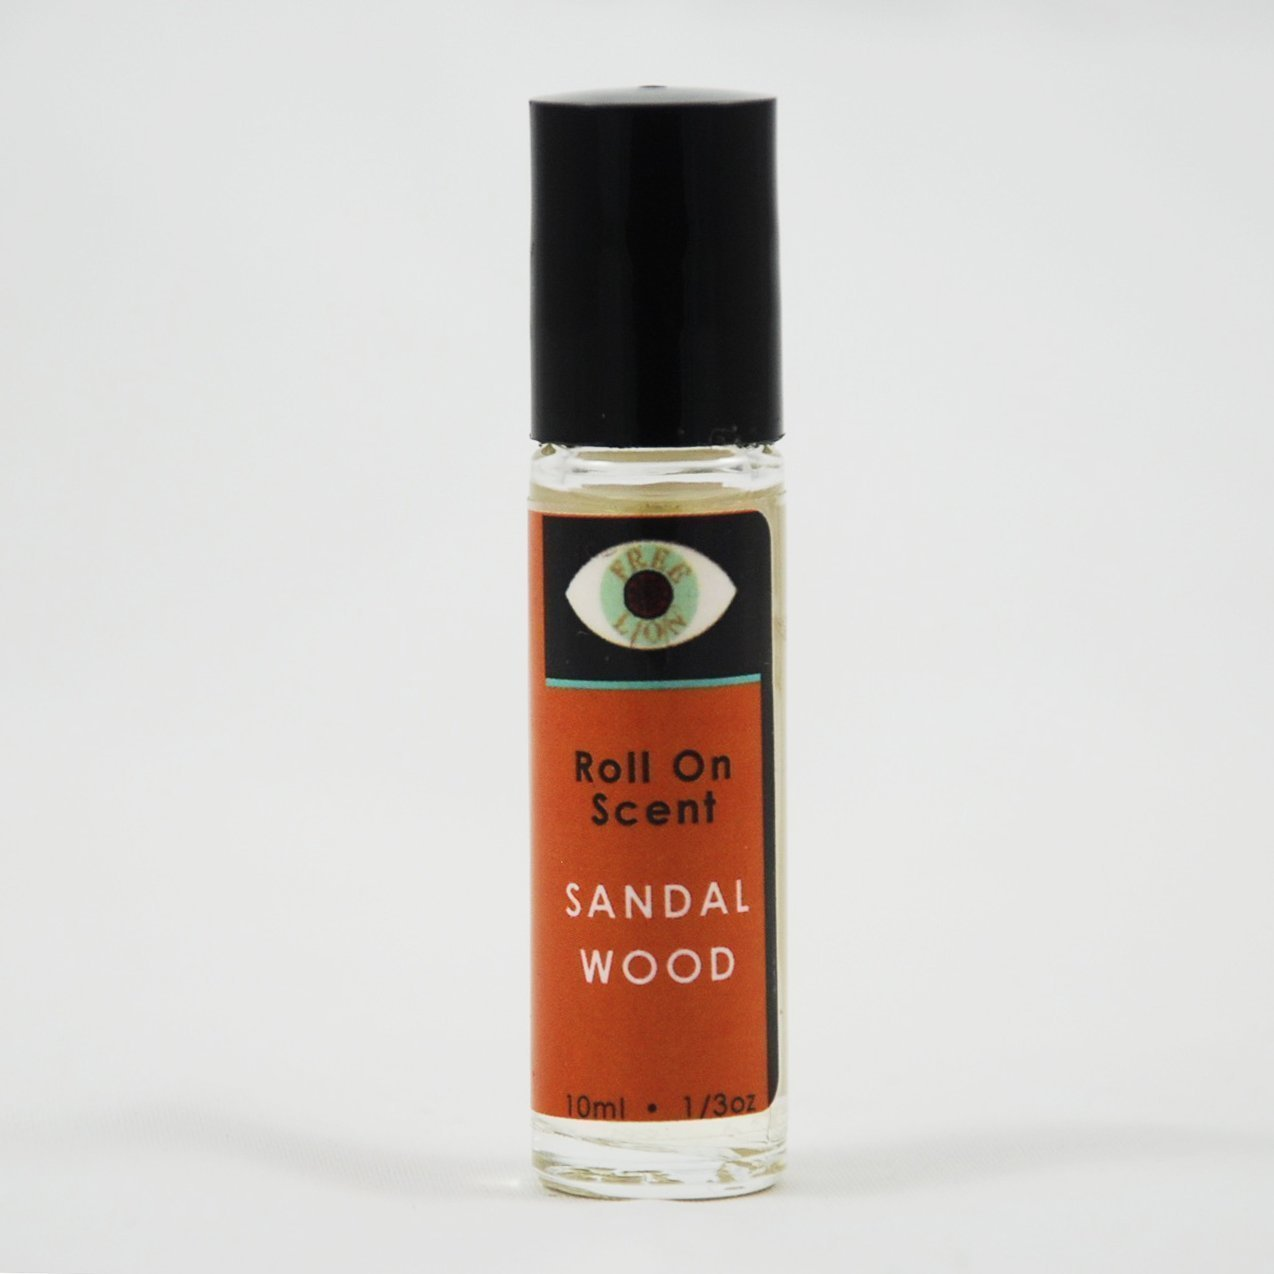 Free Lion Sandalwood Roll On Perfume - 10ml Handcrafted Natural and Non-Toxic Fragrance and Essential Oils